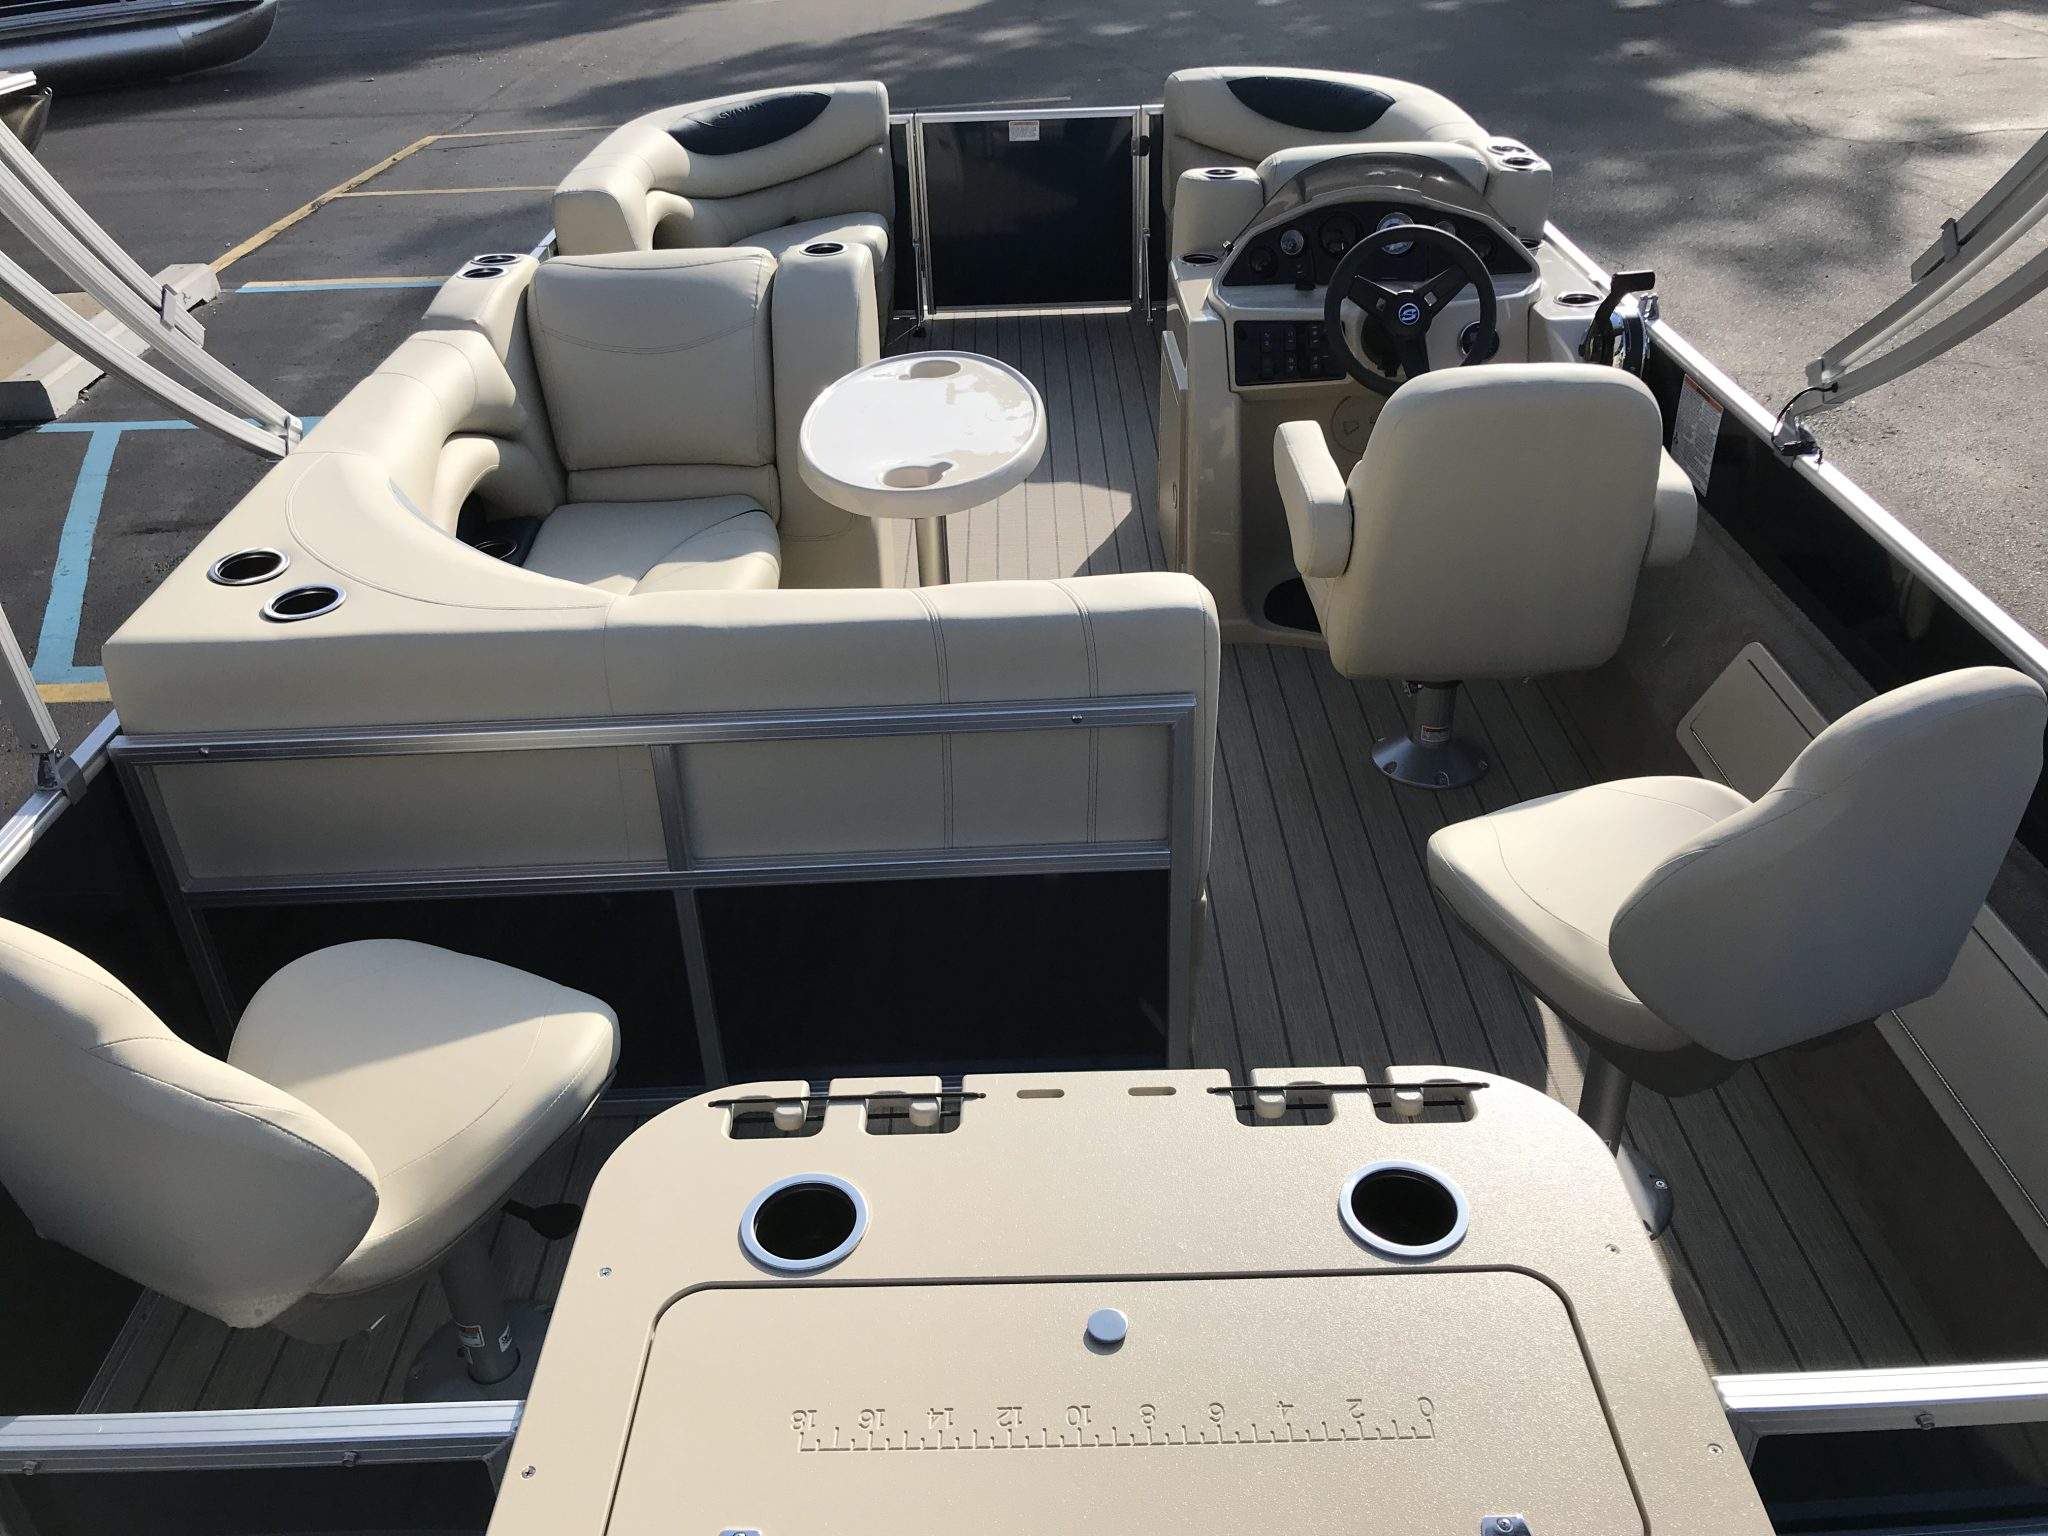 Sylvan 8520 Cruise-n-Fish Cockpit